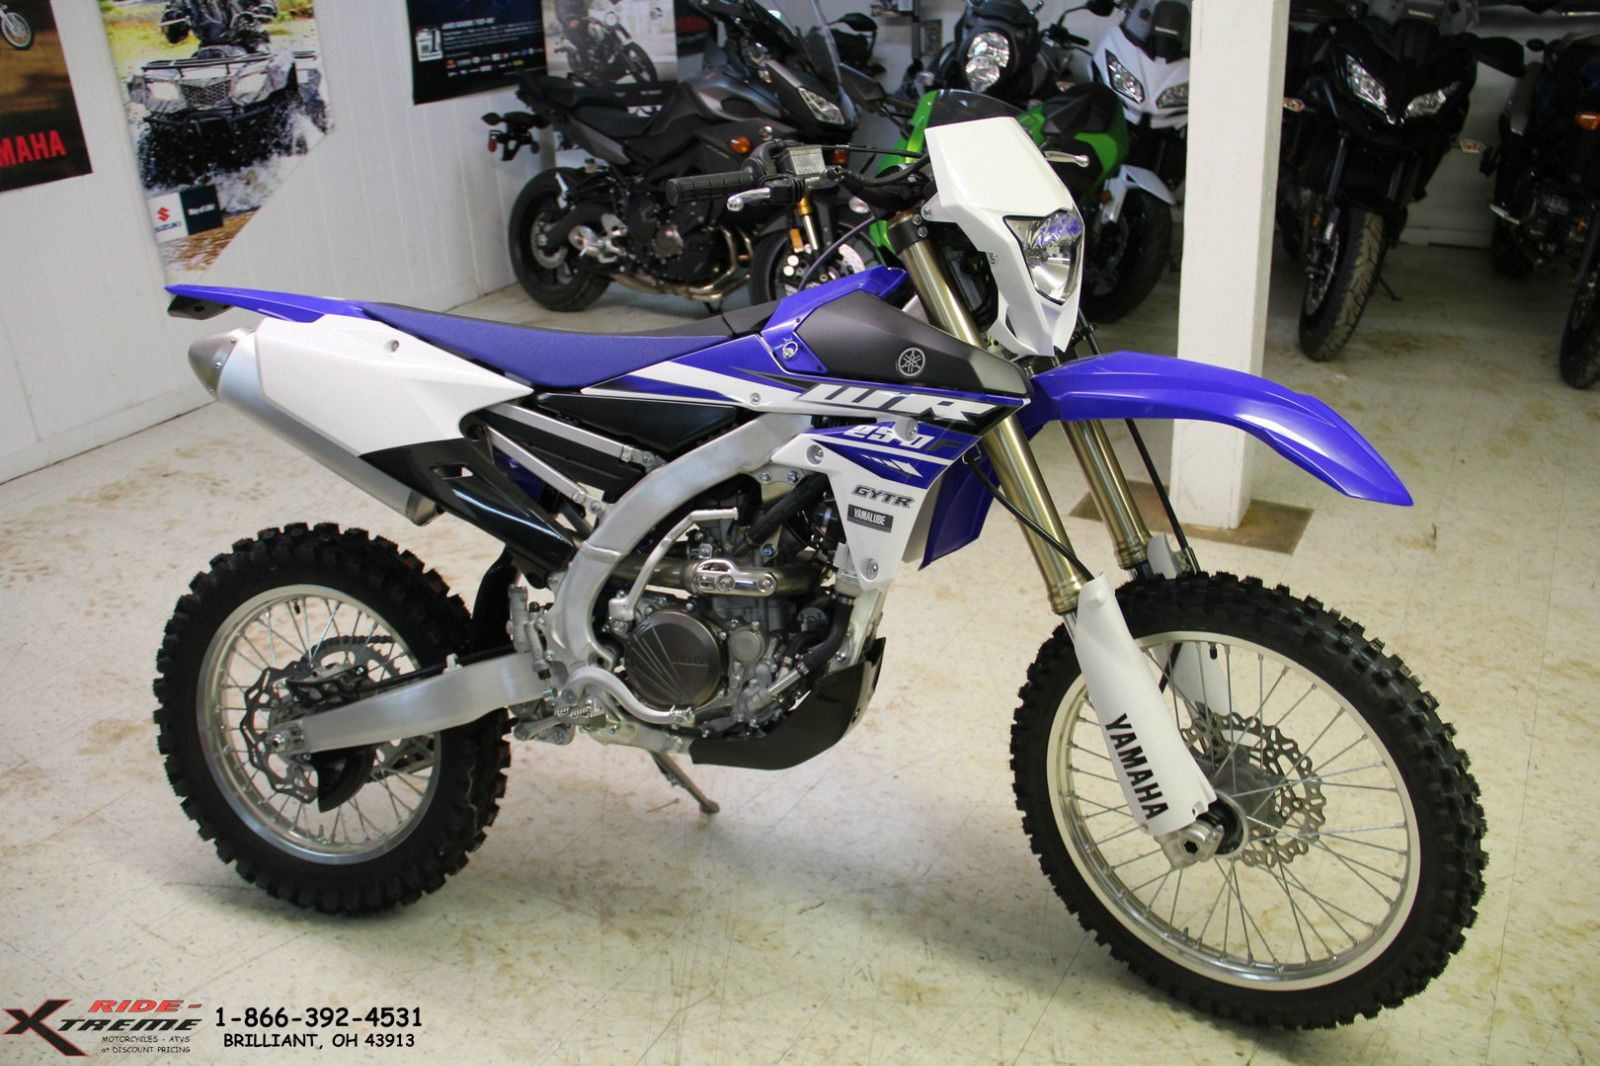 2015 Yamaha Wr250f Enduro Motorcycle For Sale Enduro Motorcycle Enduro Motorcycles For Sale Motorcycle